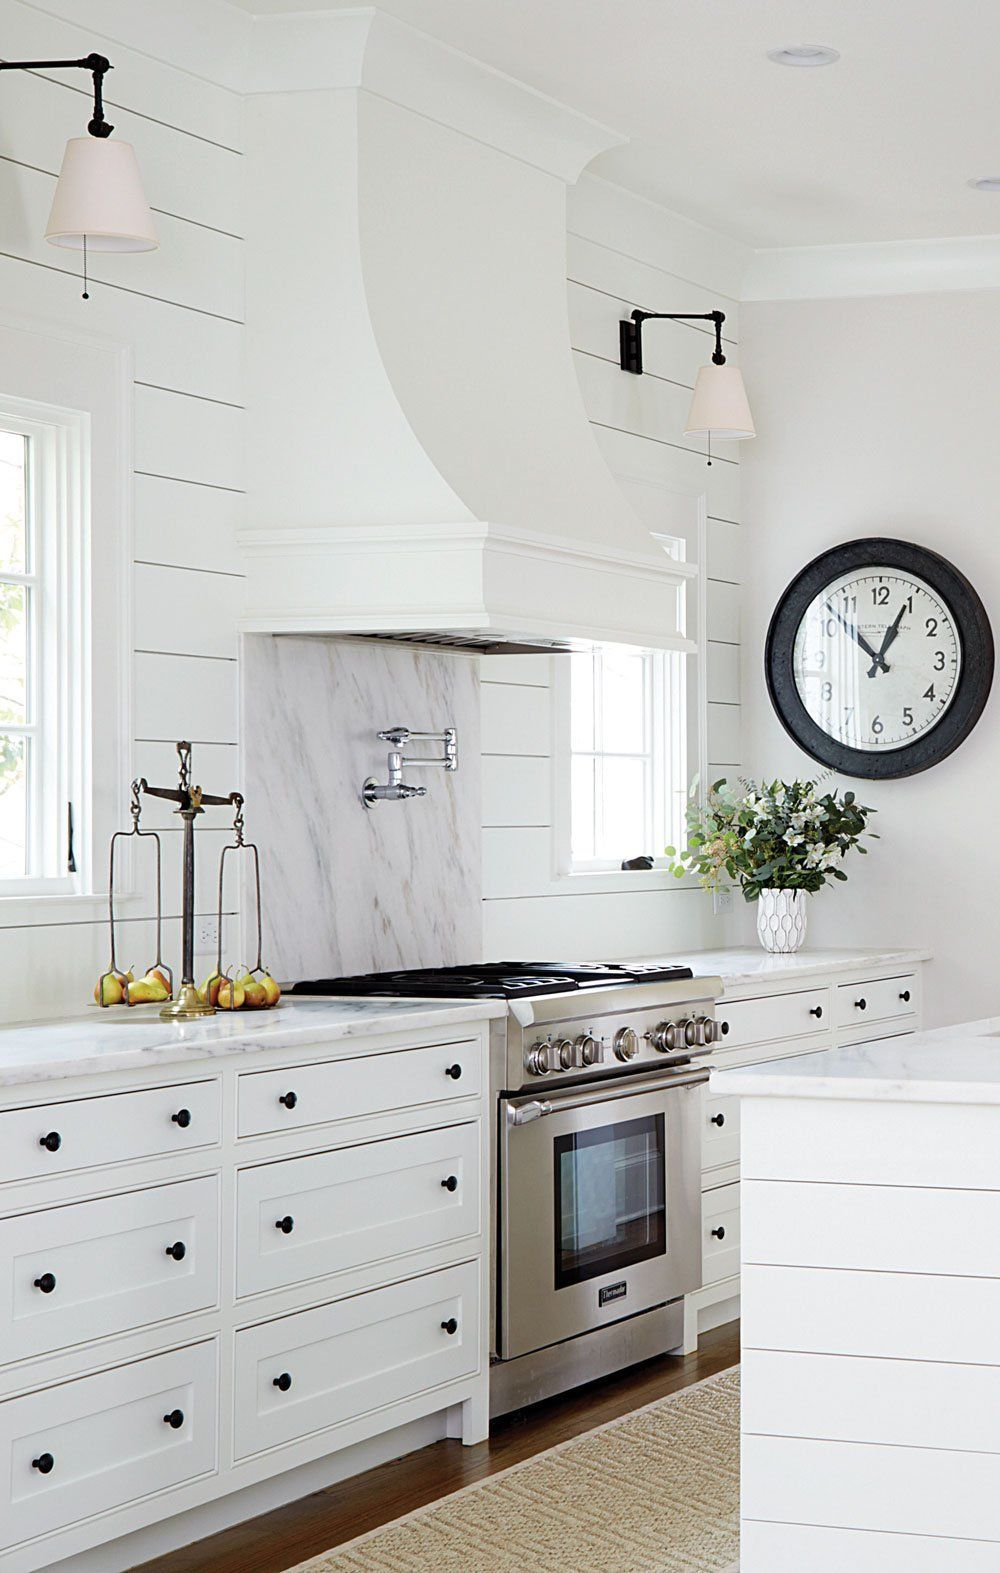 Antique white kitchen cabinets are used so that the ...